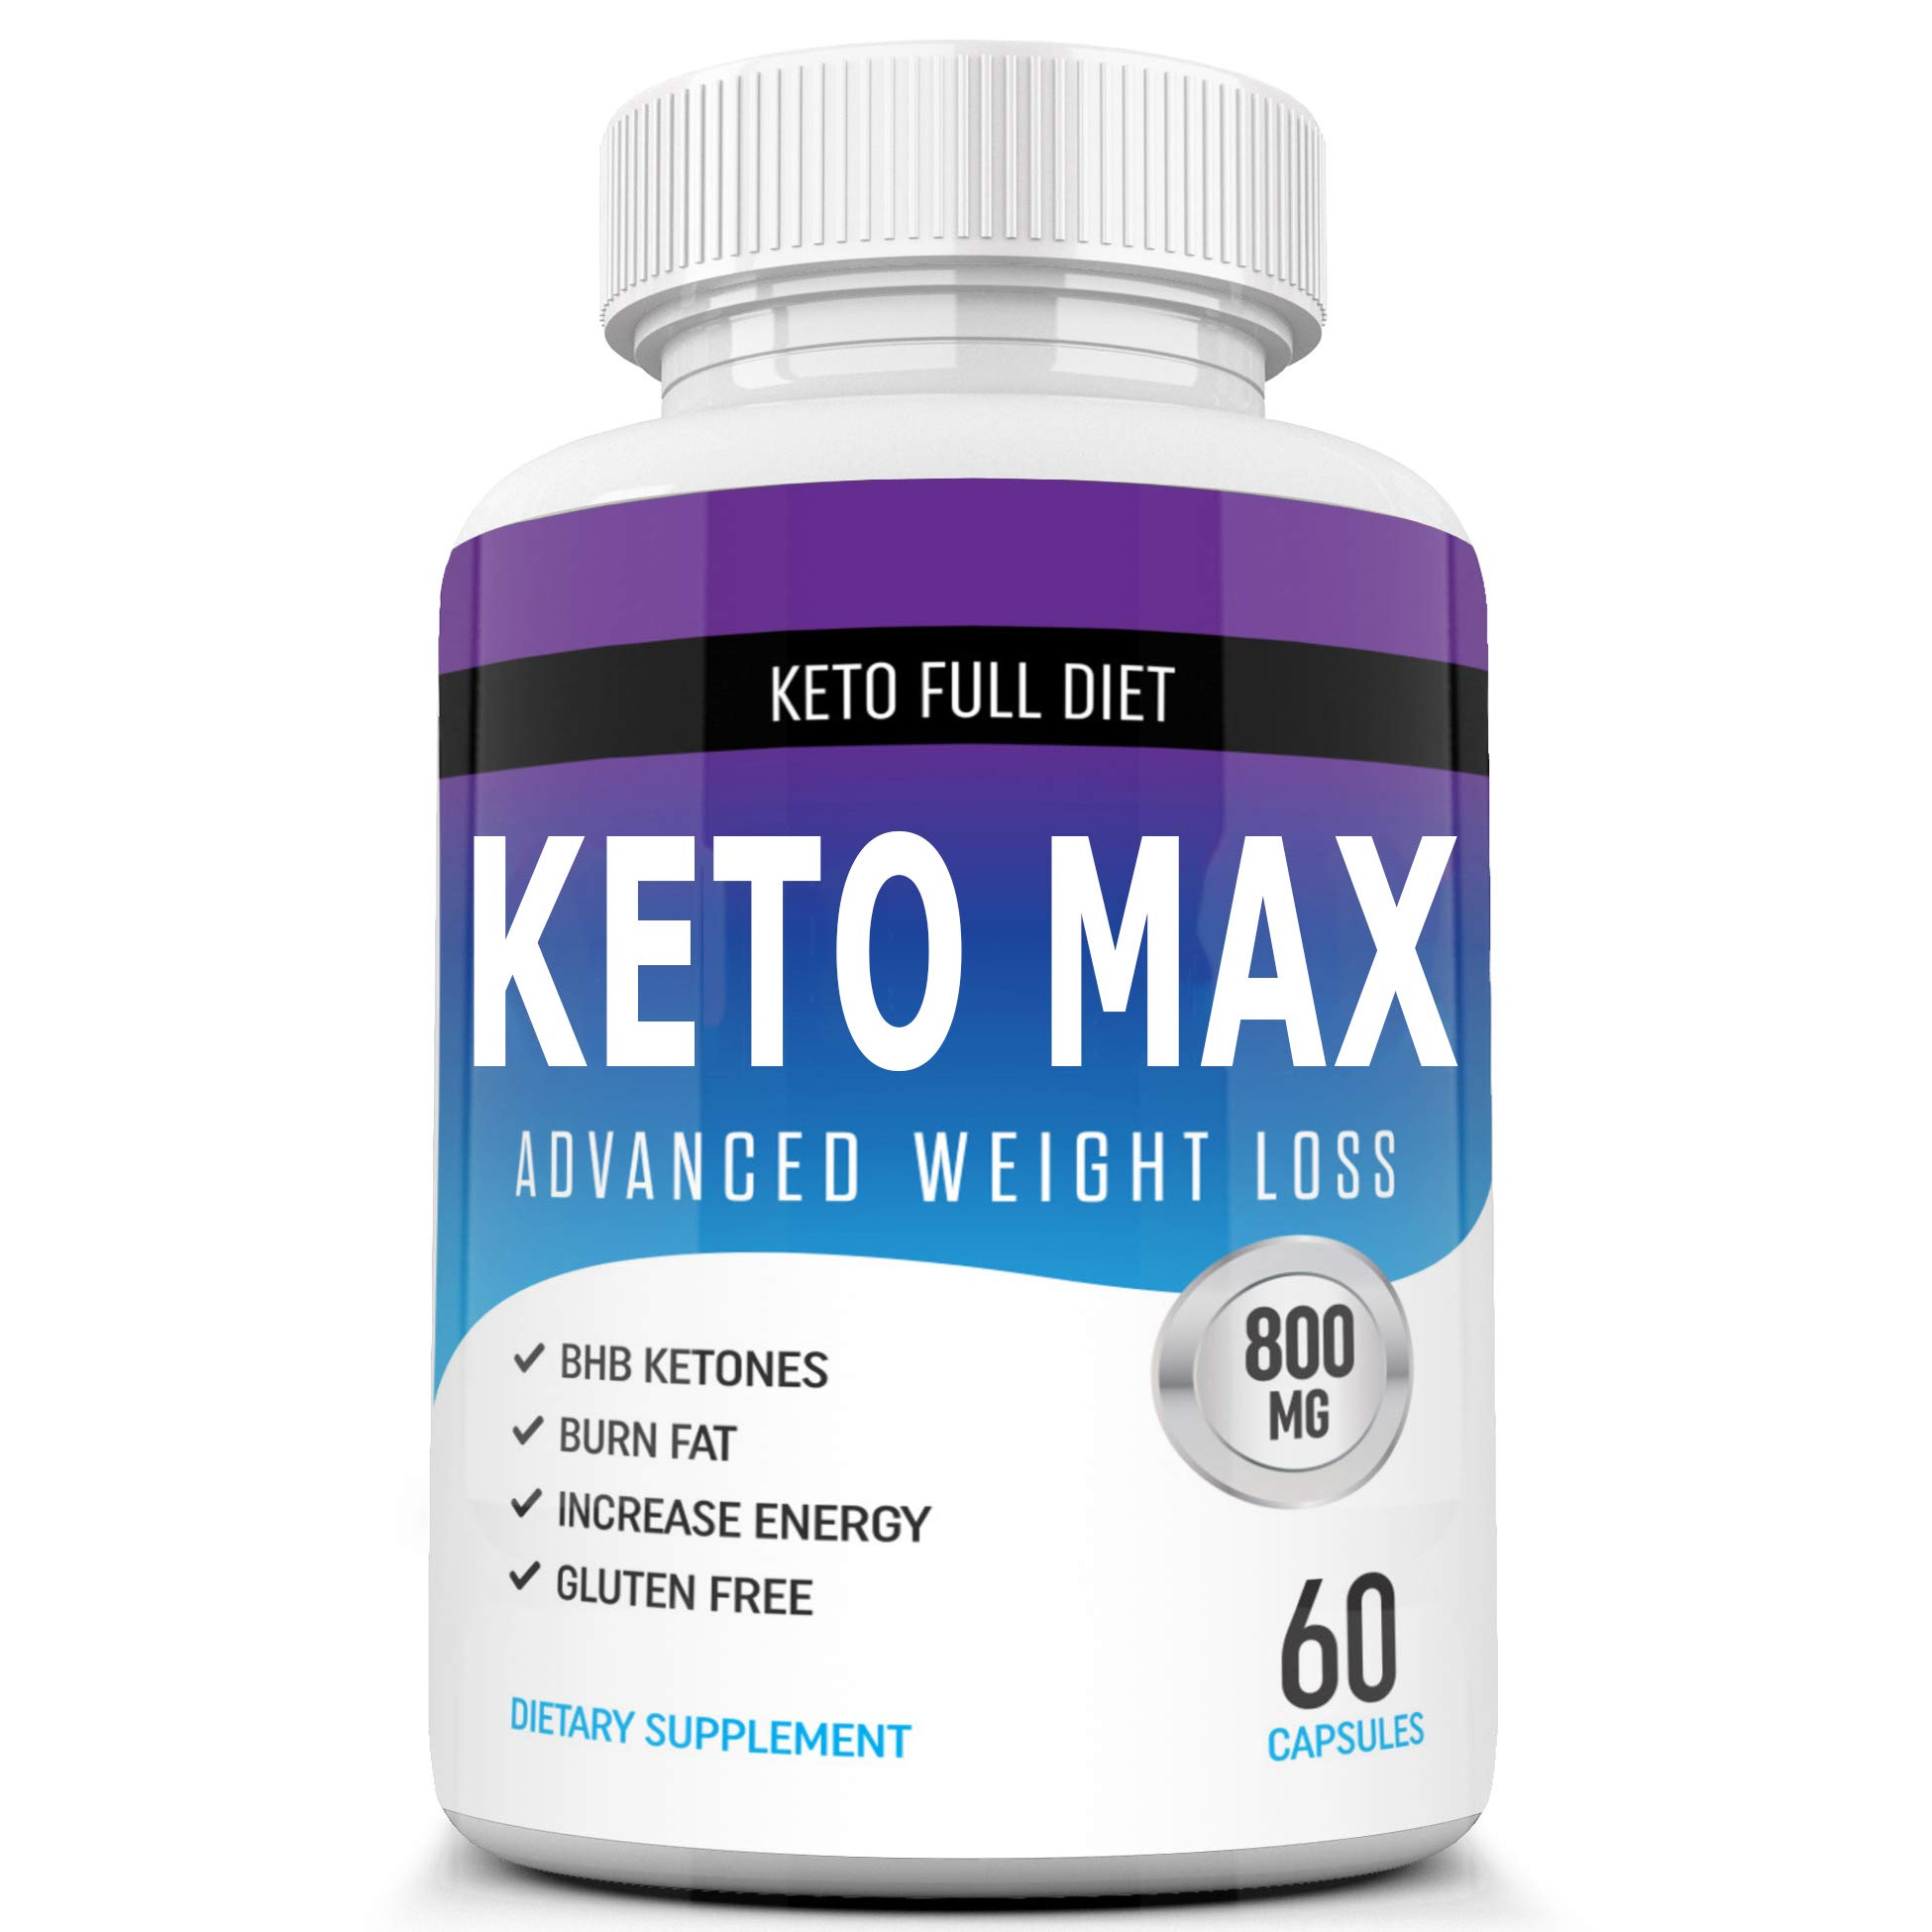 Amazon.com: Keto Diet Pills from Shark Tank - Helps Block